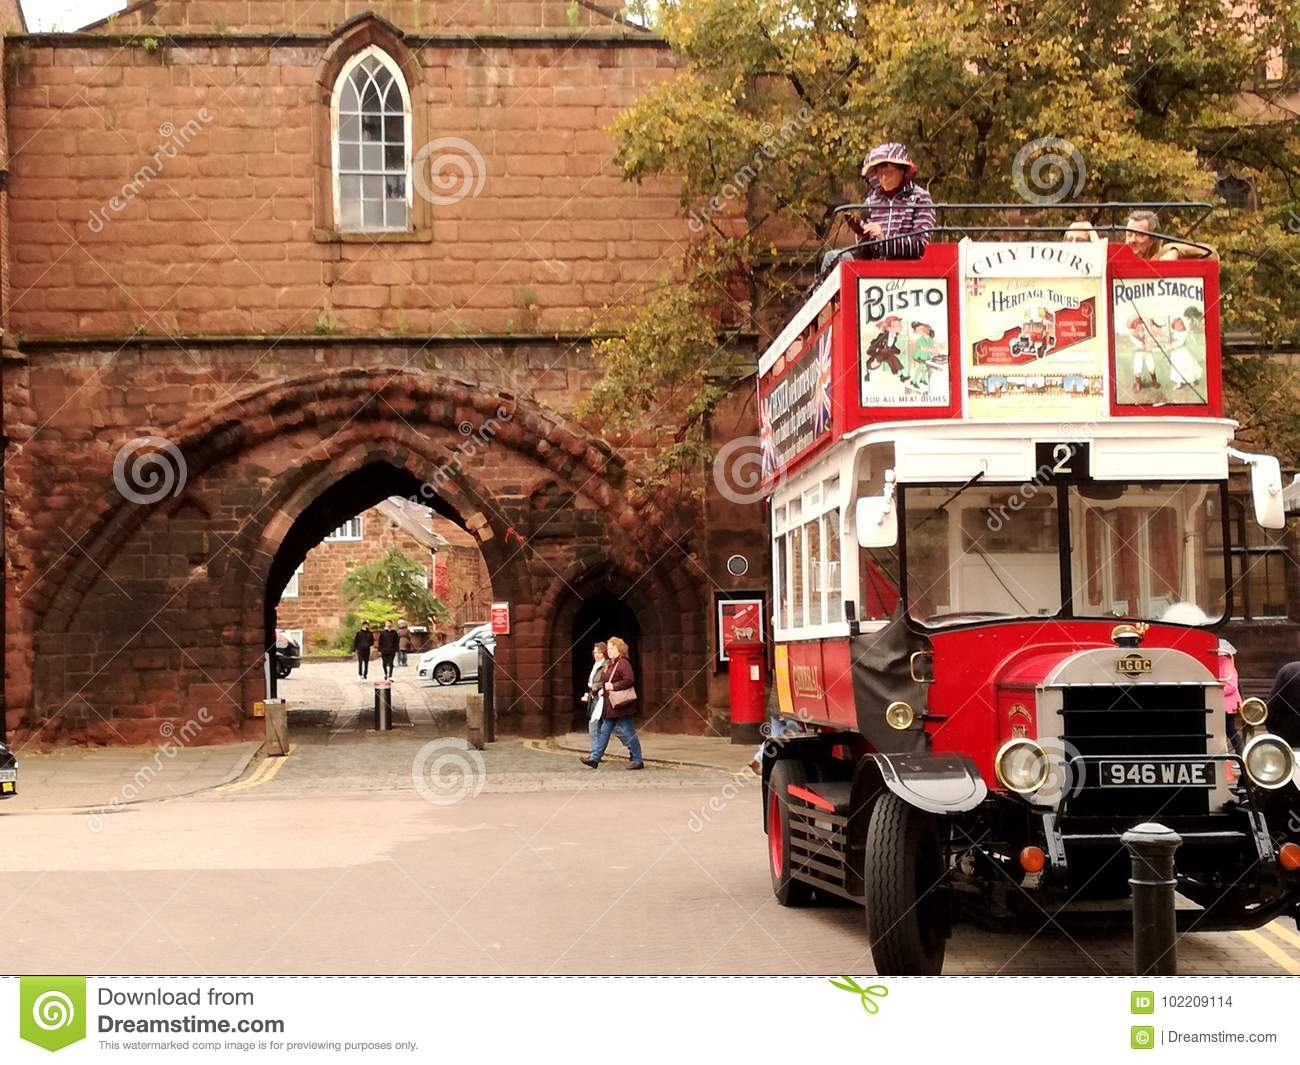 A bus on the Chester walls